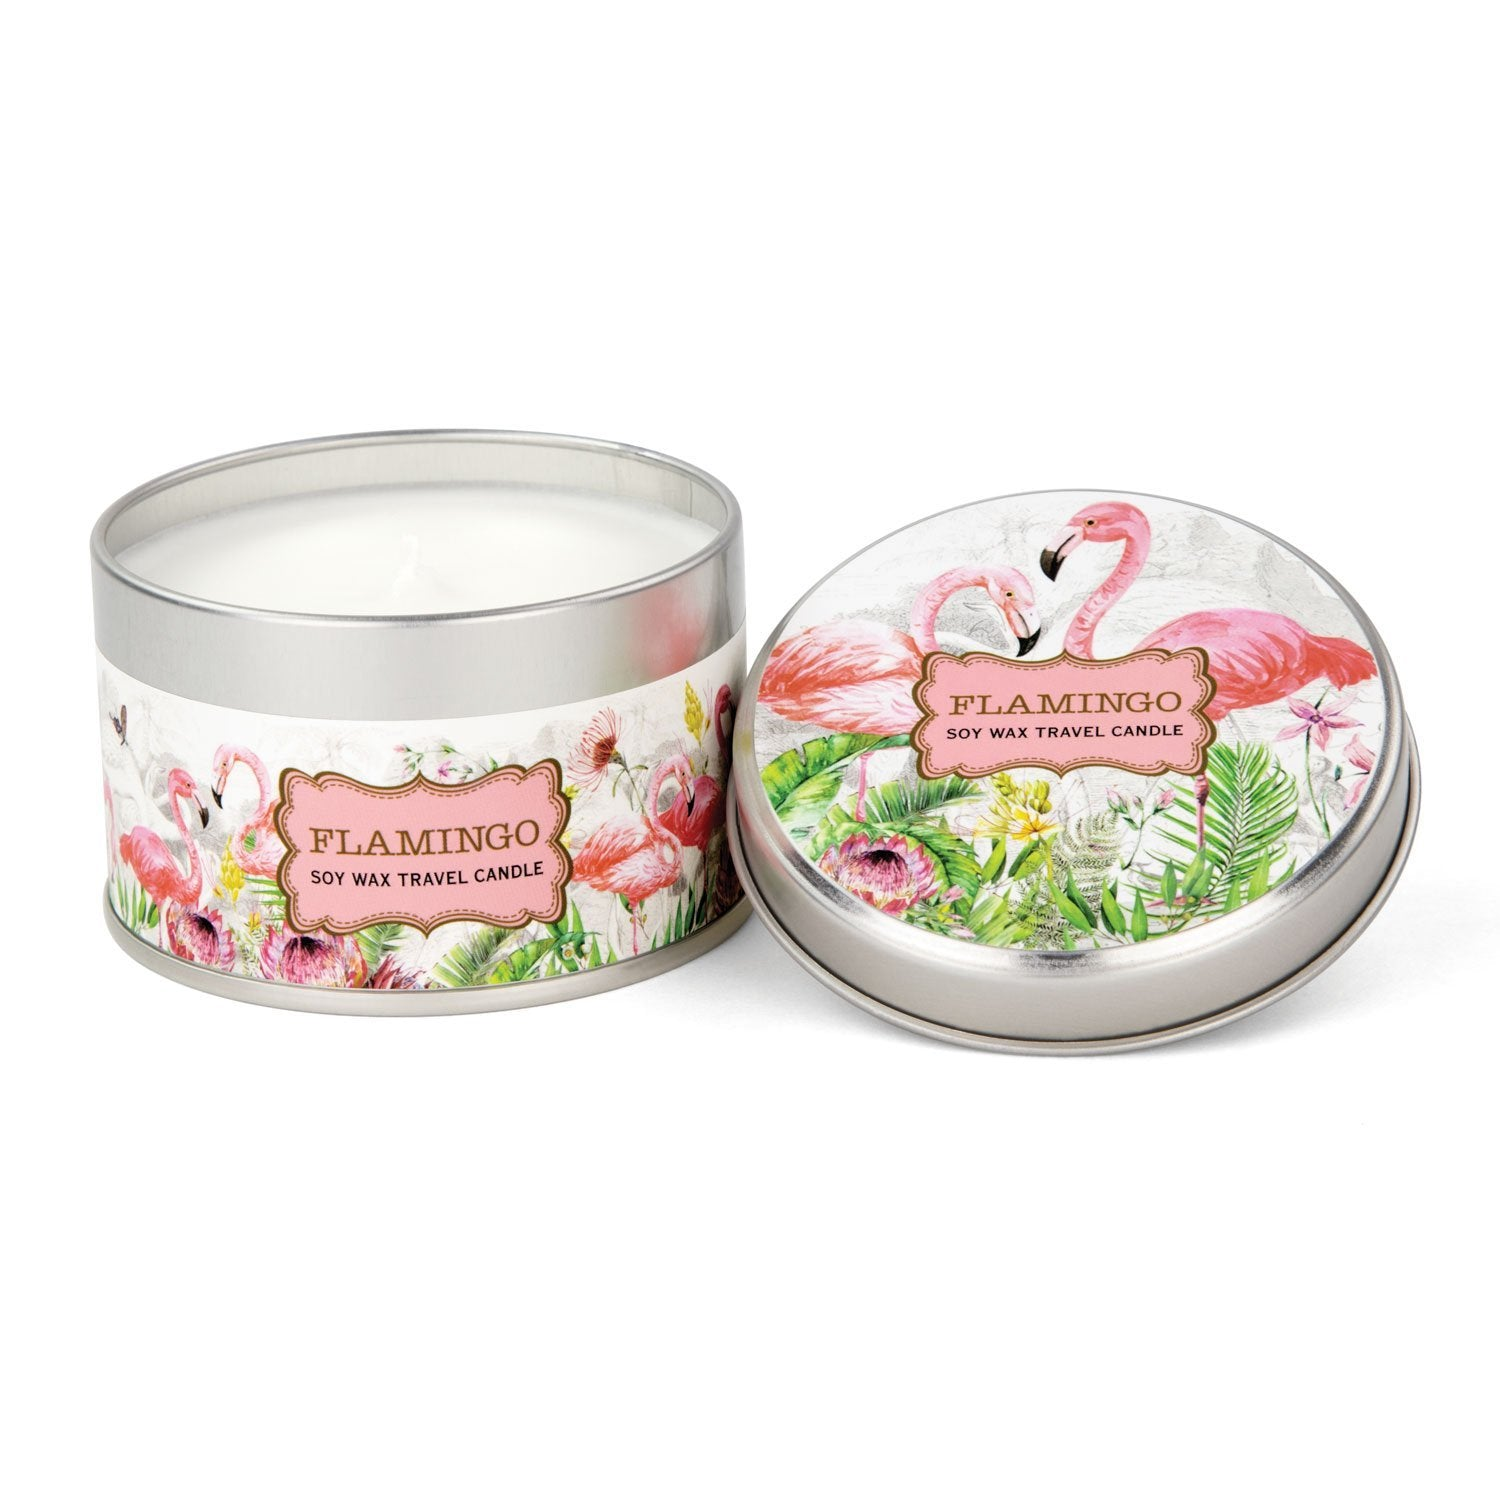 FLAMINGO TRAVEL CANDLE CANT320 - Molly's! A Chic and Unique Boutique